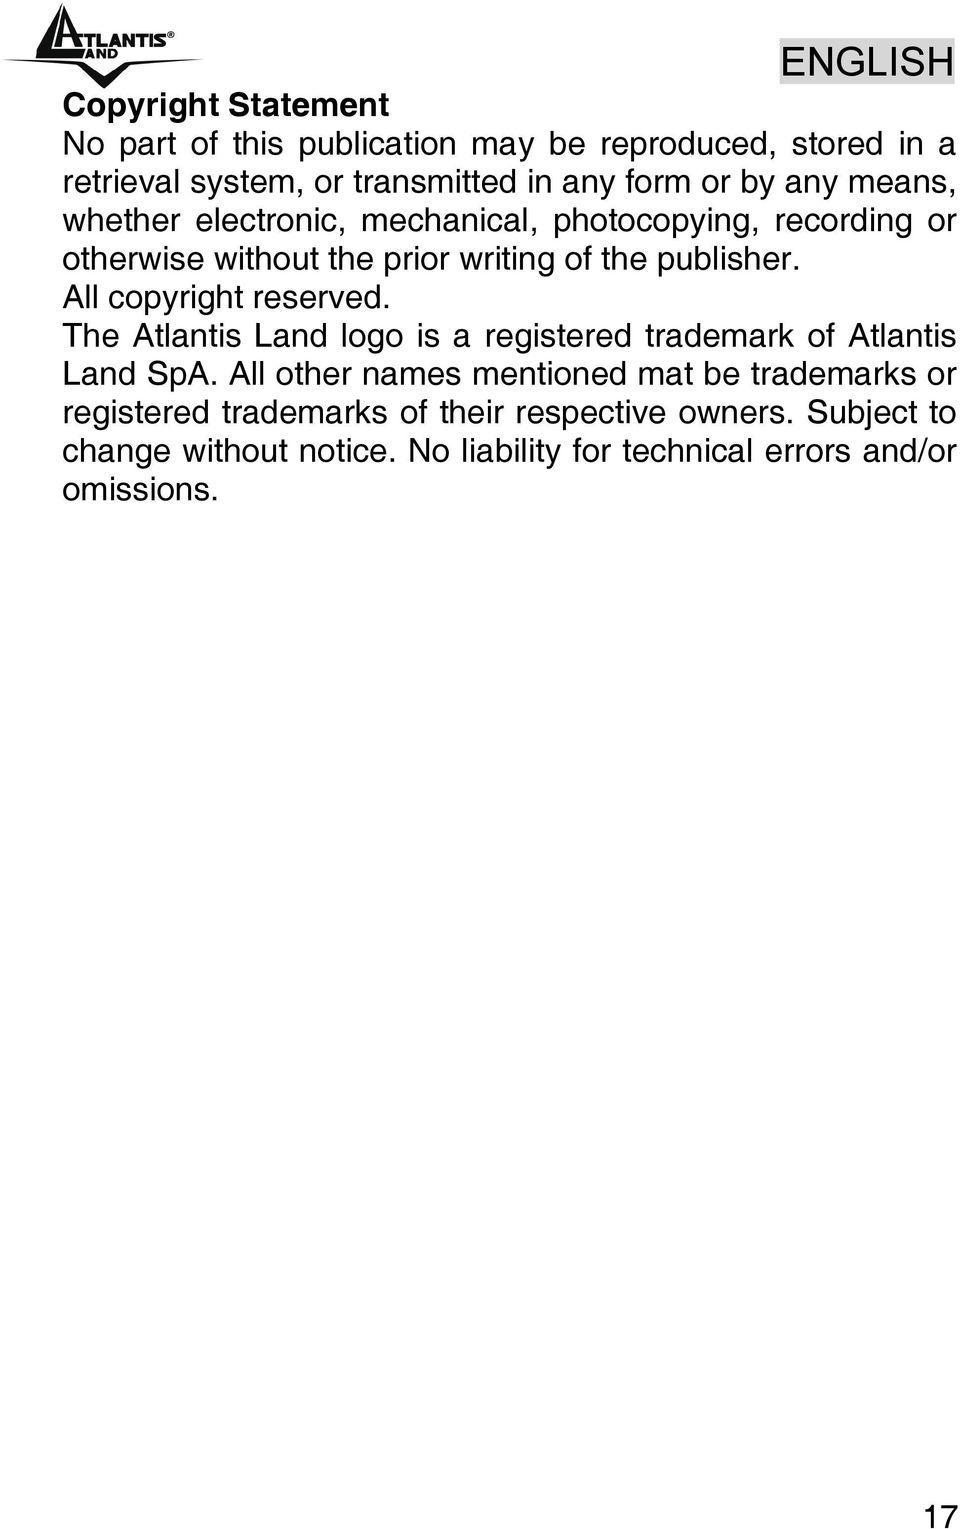 All copyright reserved. The Atlantis Land logo is a registered trademark of Atlantis Land SpA.